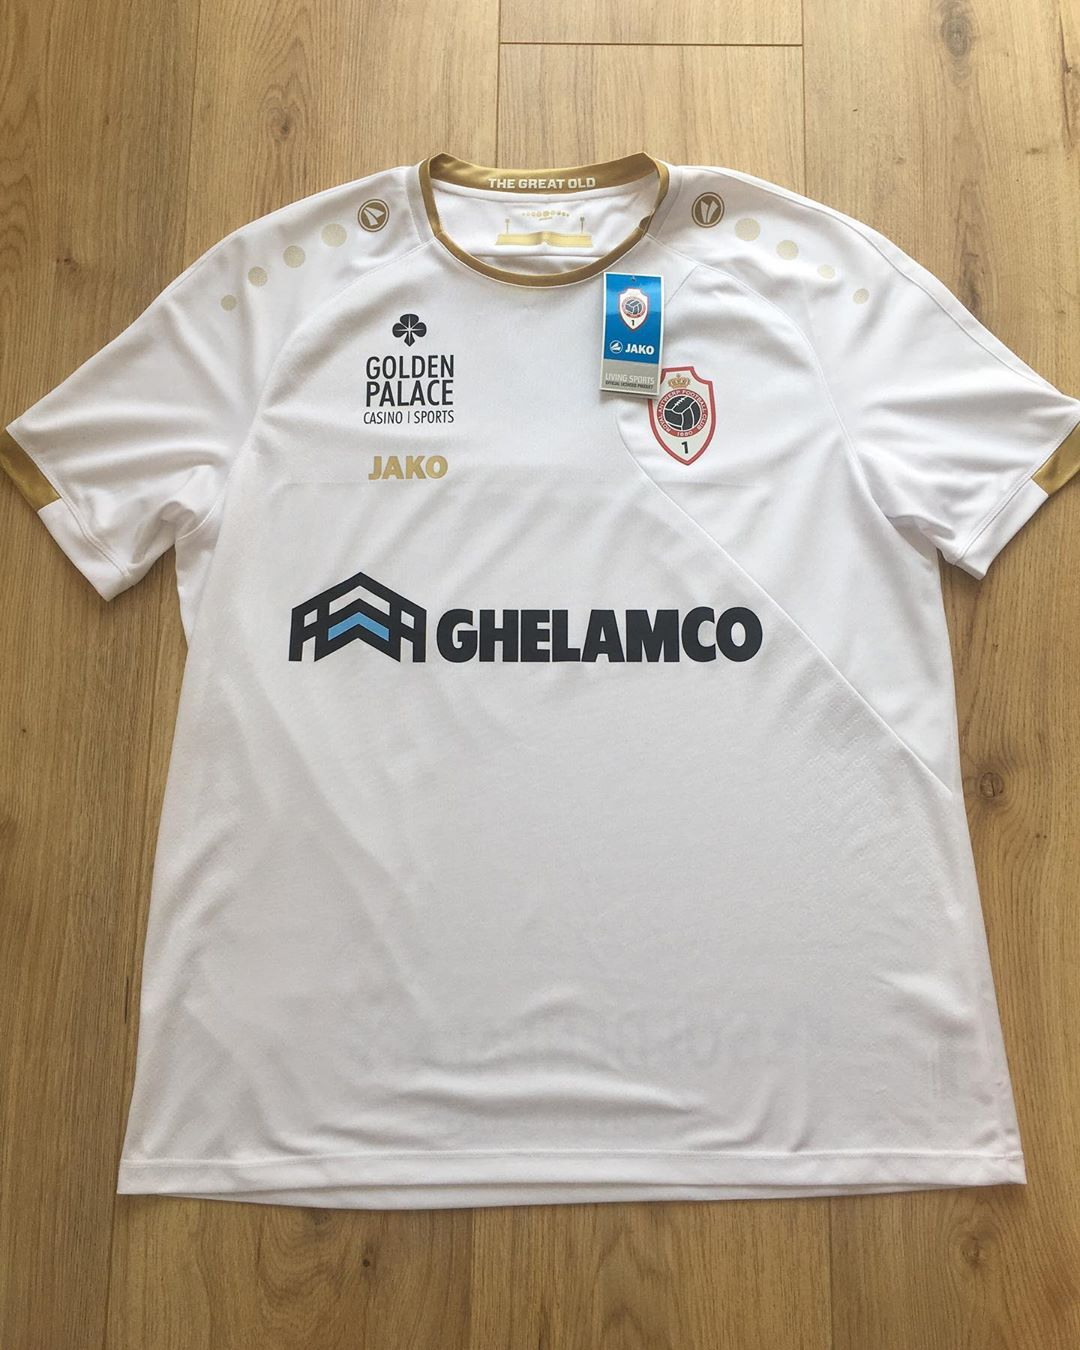 Royal Antwerp F.C. Away 2019/2020 Football Shirt Manufactured By Jako. The club plays football in Belgium.